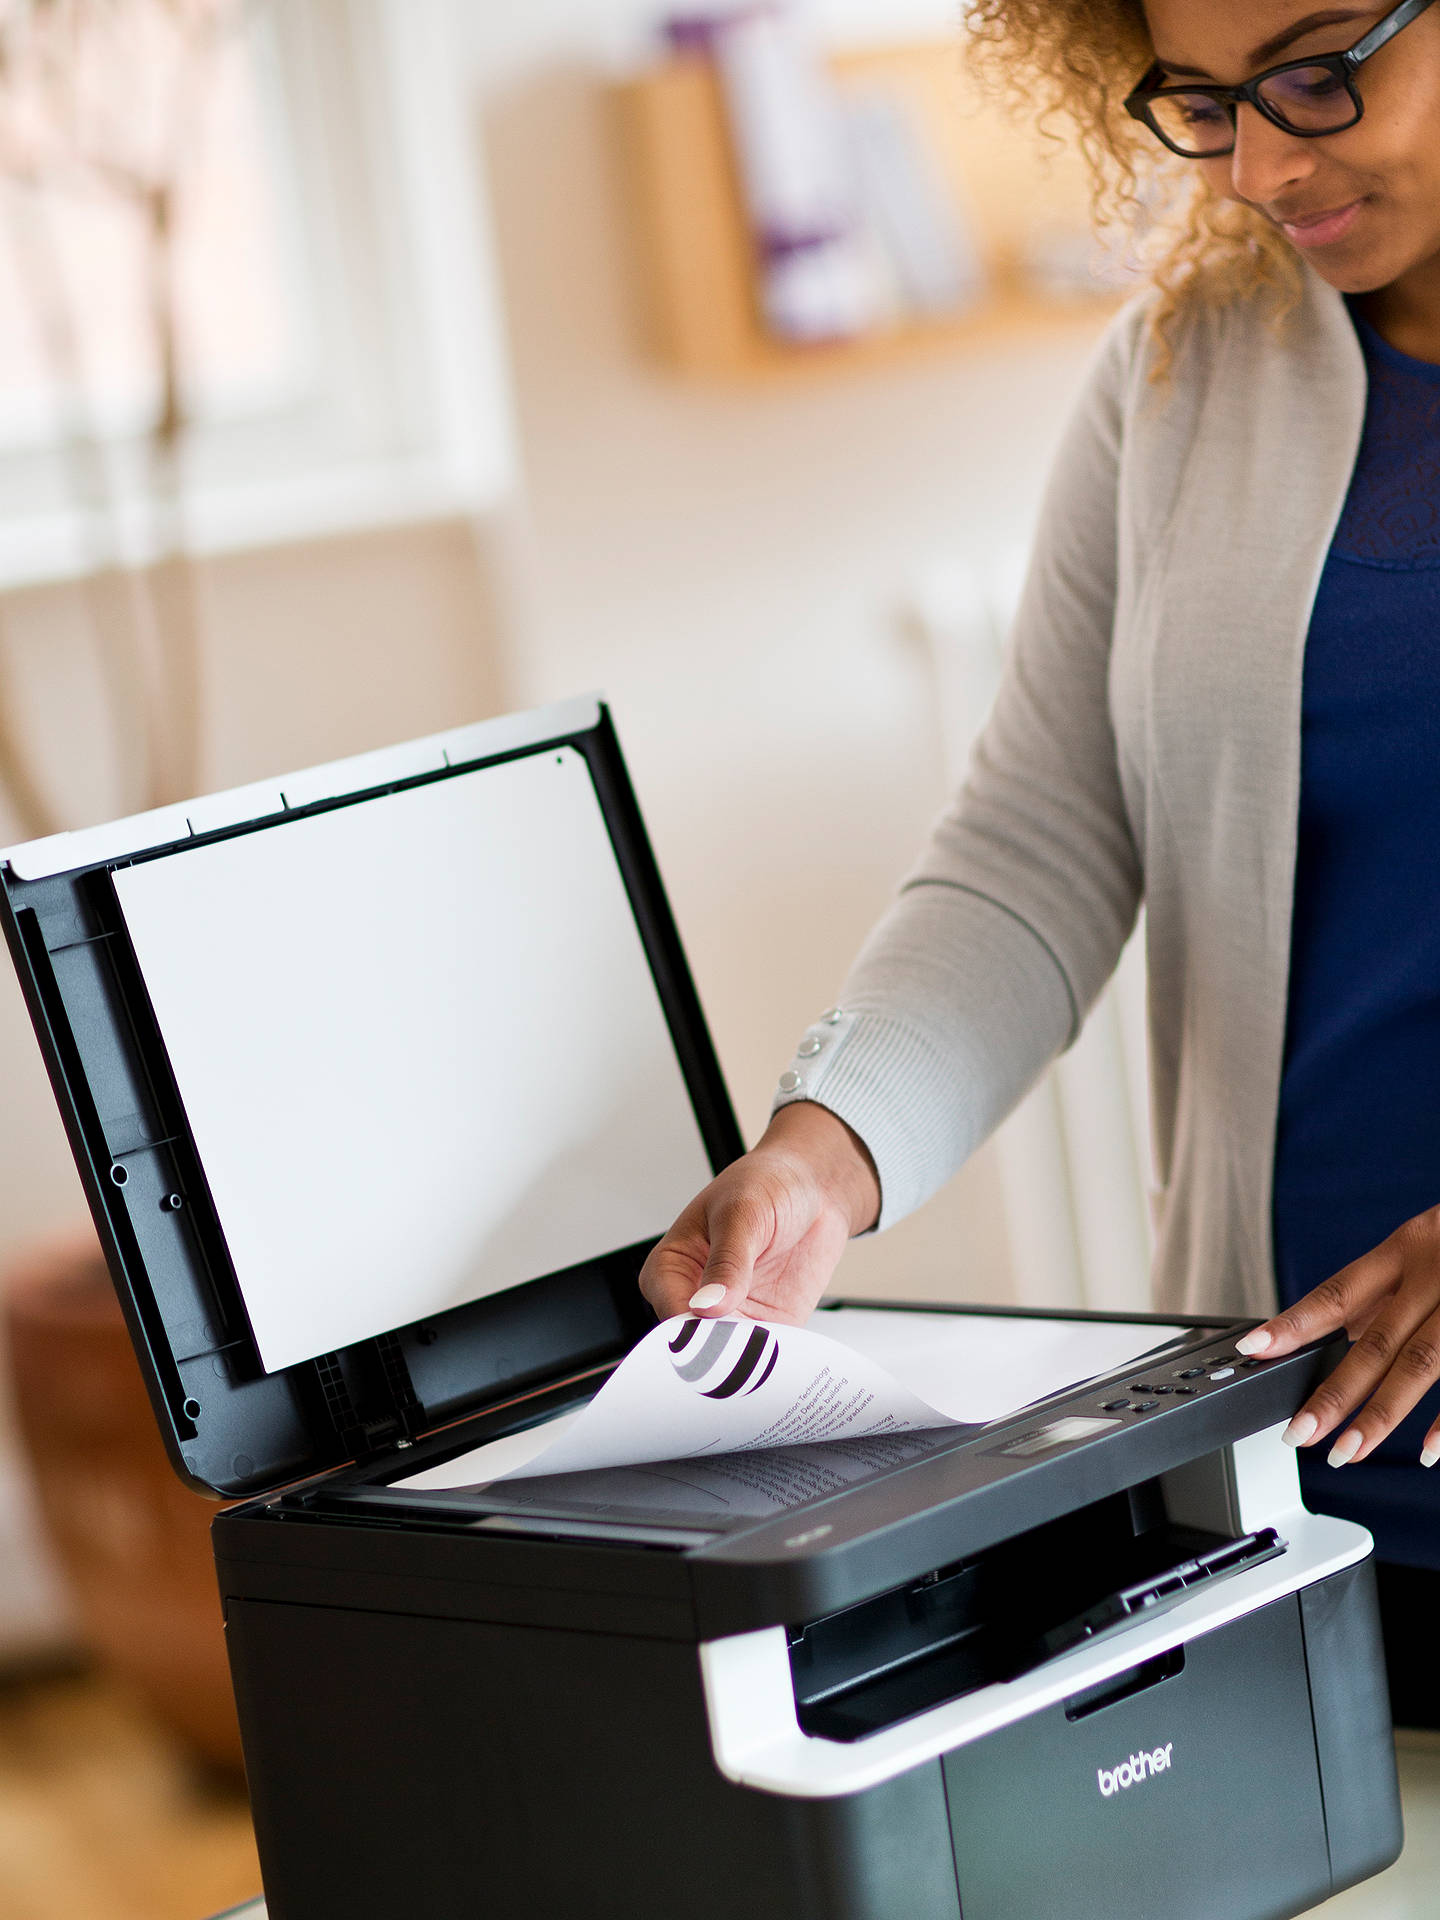 BuyBrother DCP-1612W Wireless All-In-One Mono Laser Printer with 5 Toners, Black Online at johnlewis.com